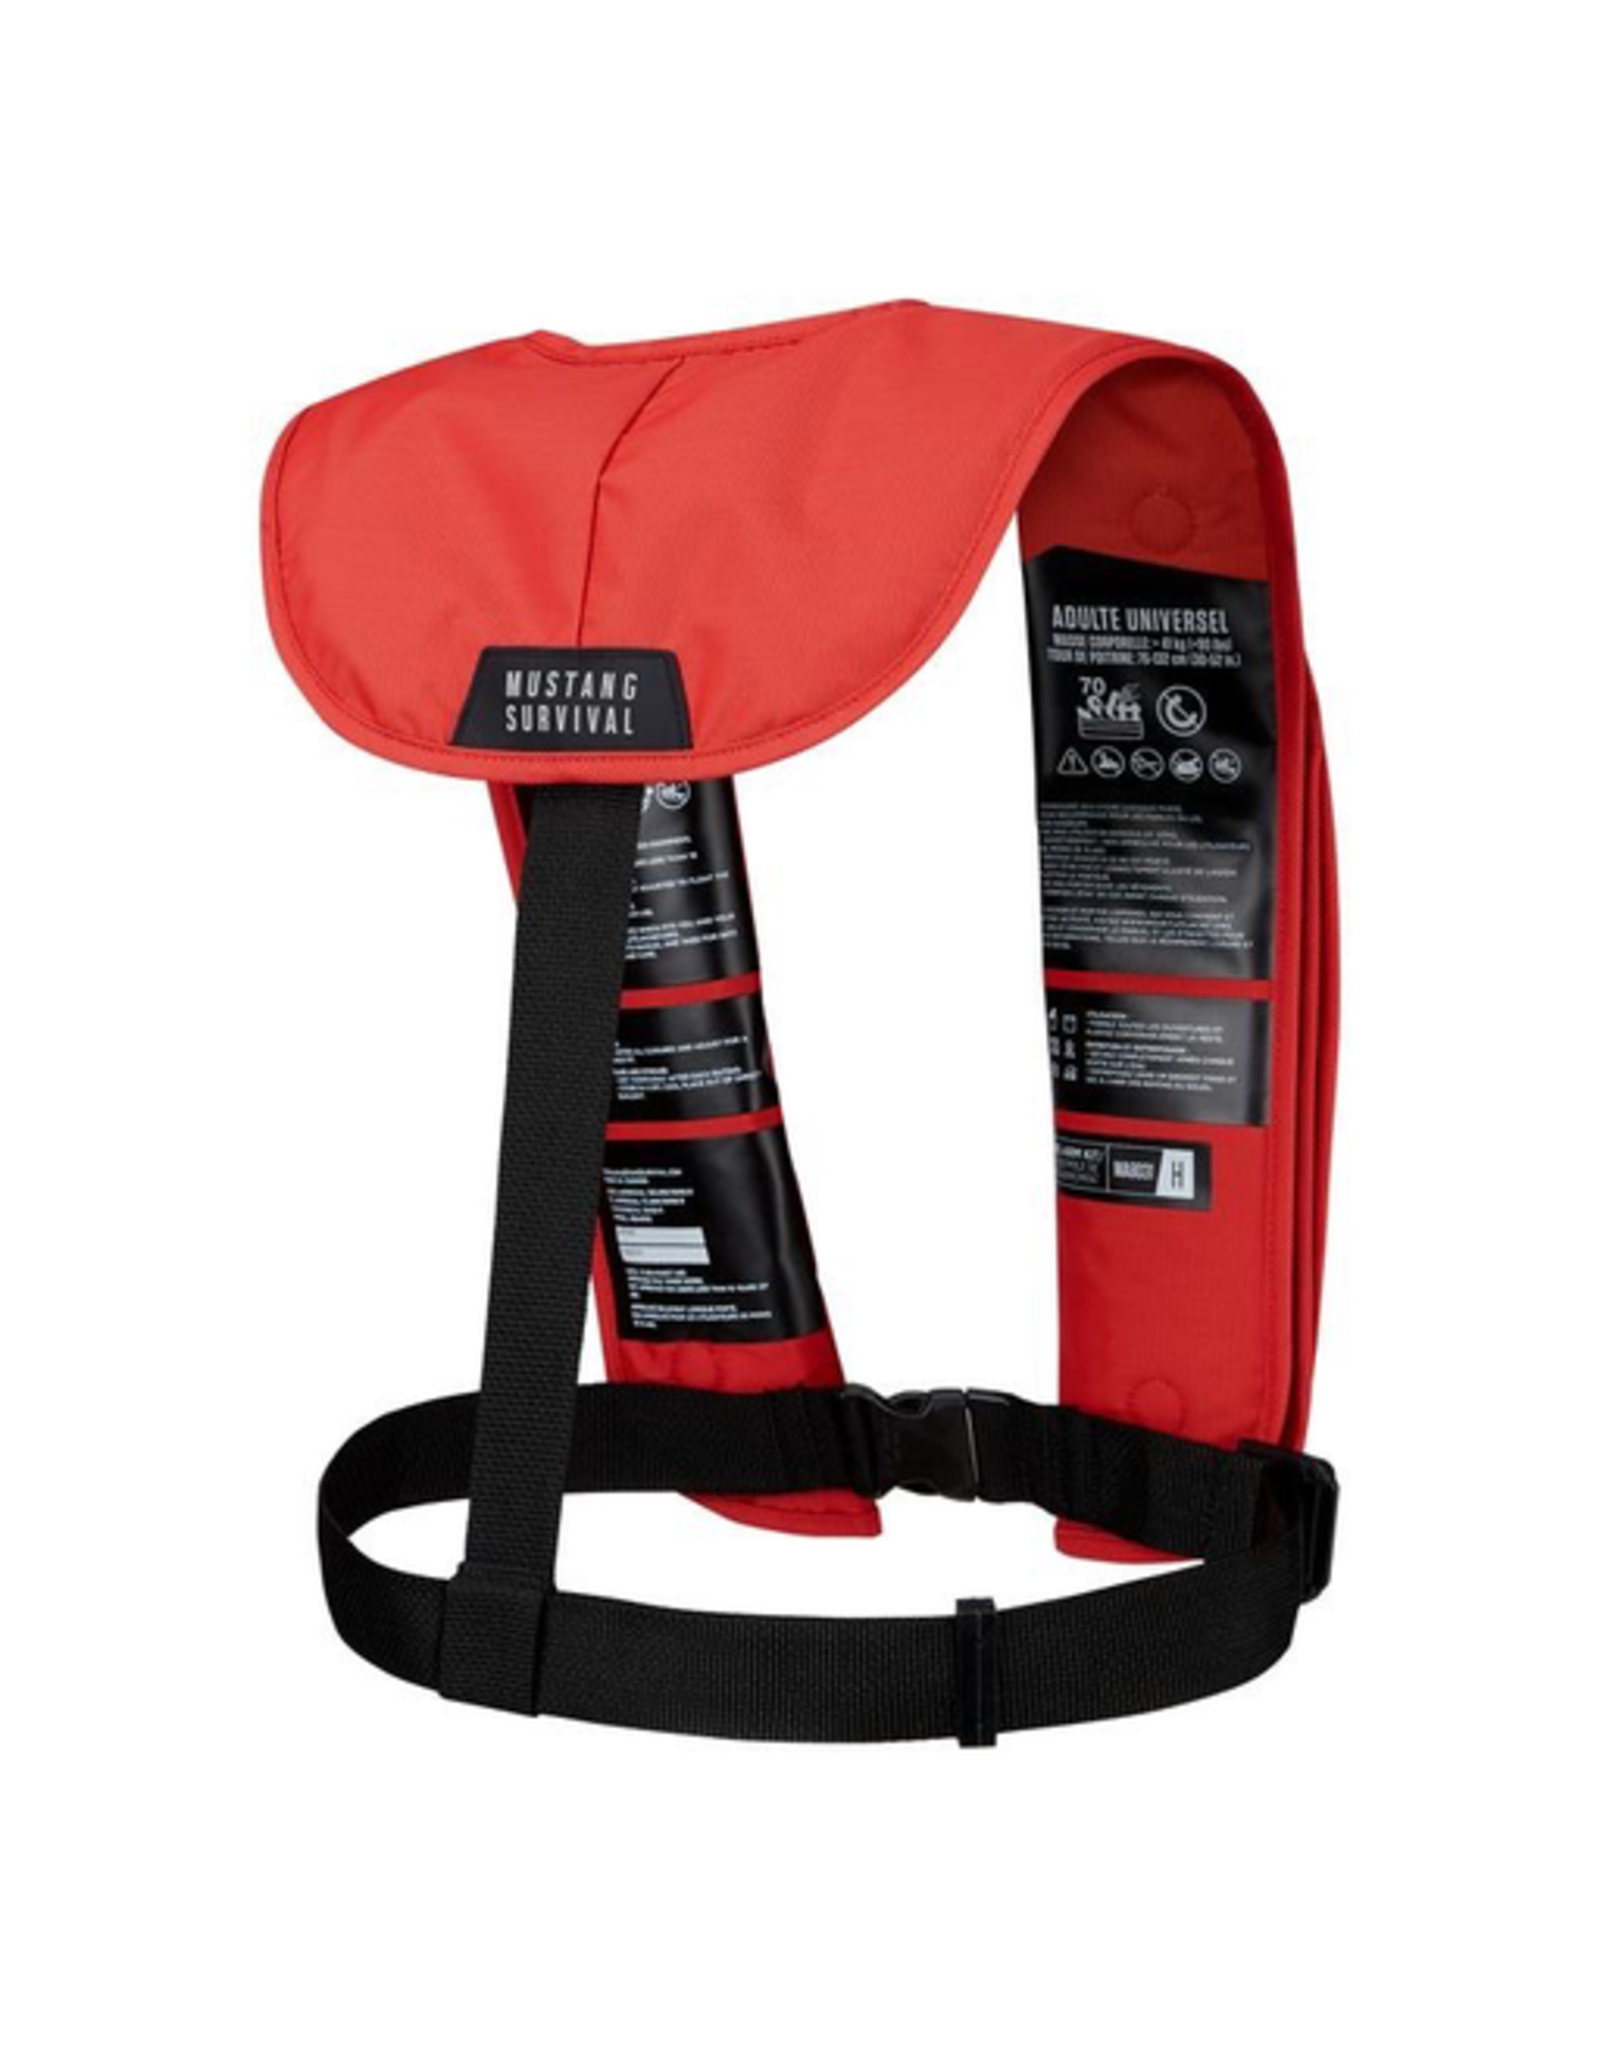 Mustang Survival Mustang Survival MIT 70 Automatic Inflatable PFD